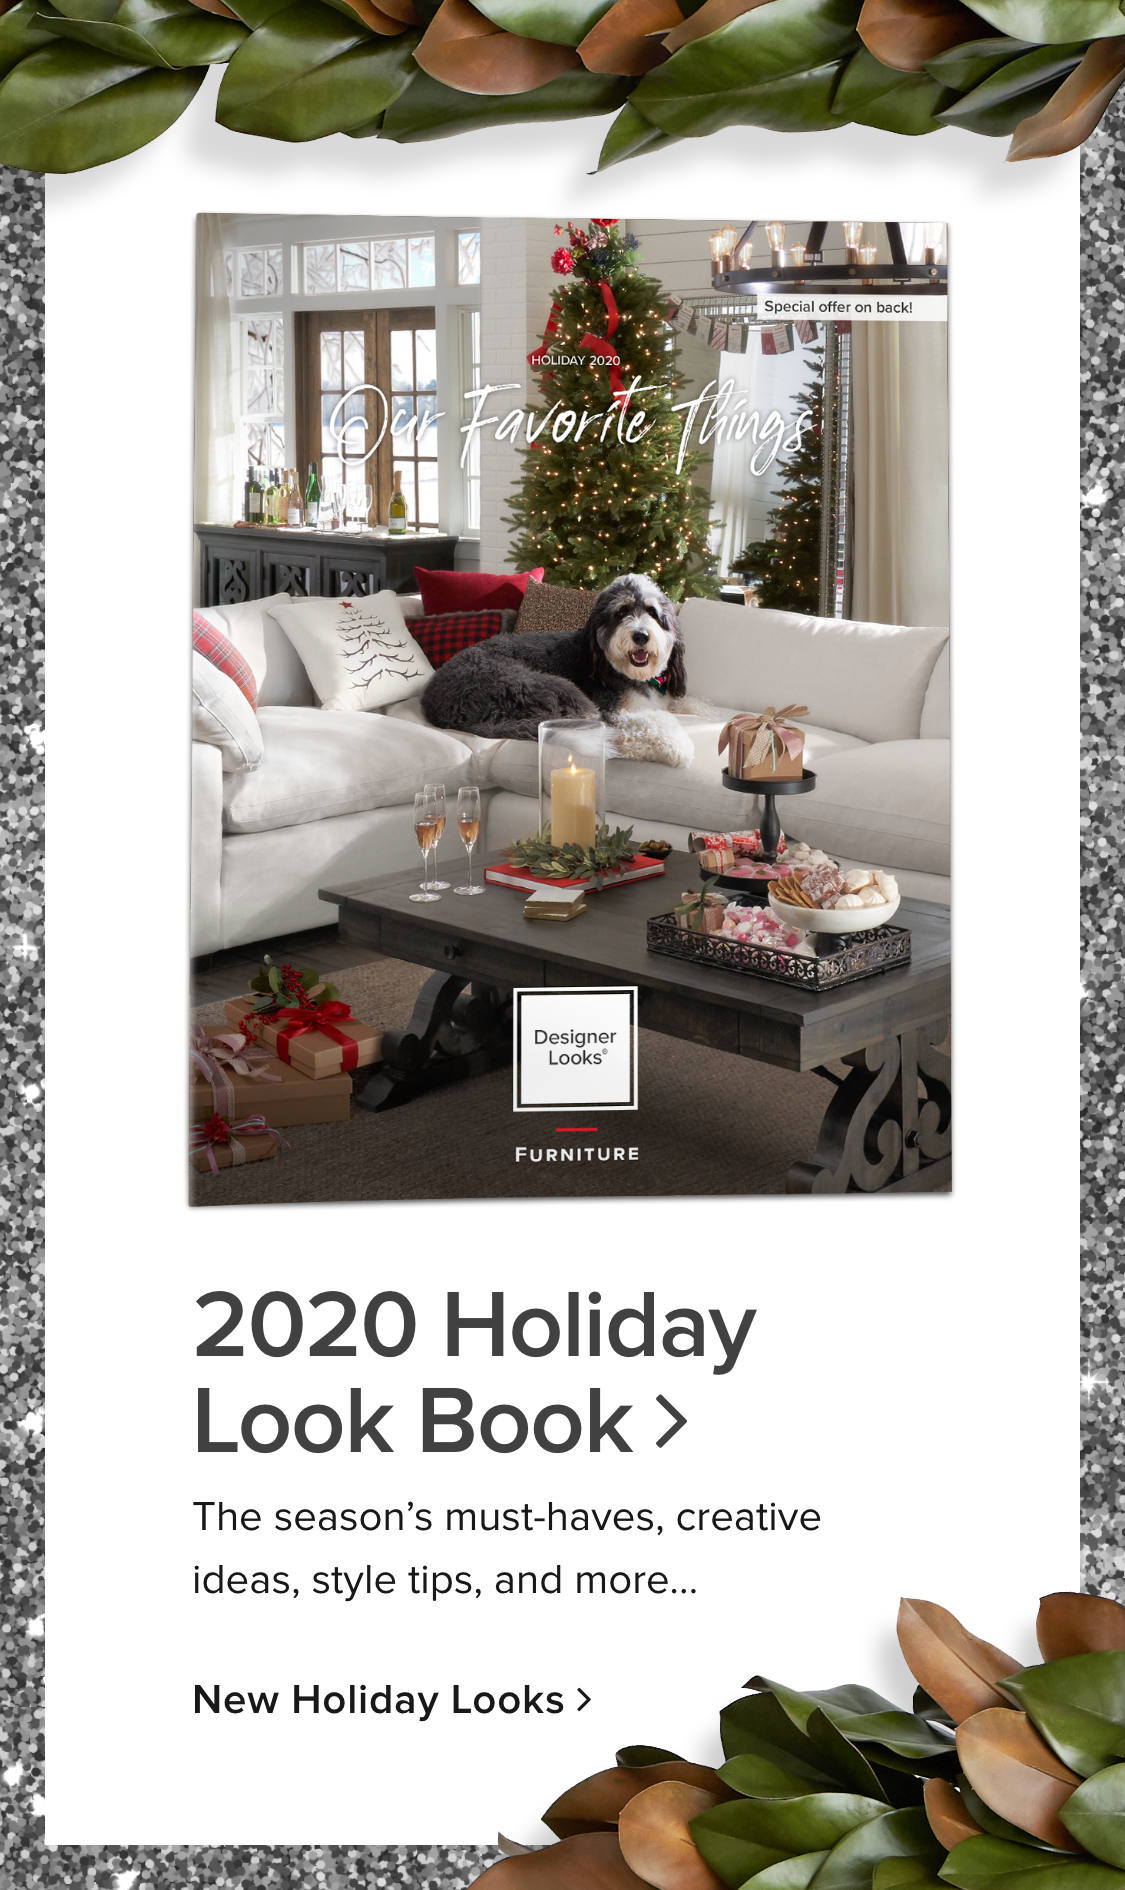 Check out our Holiday 2020 lookbook